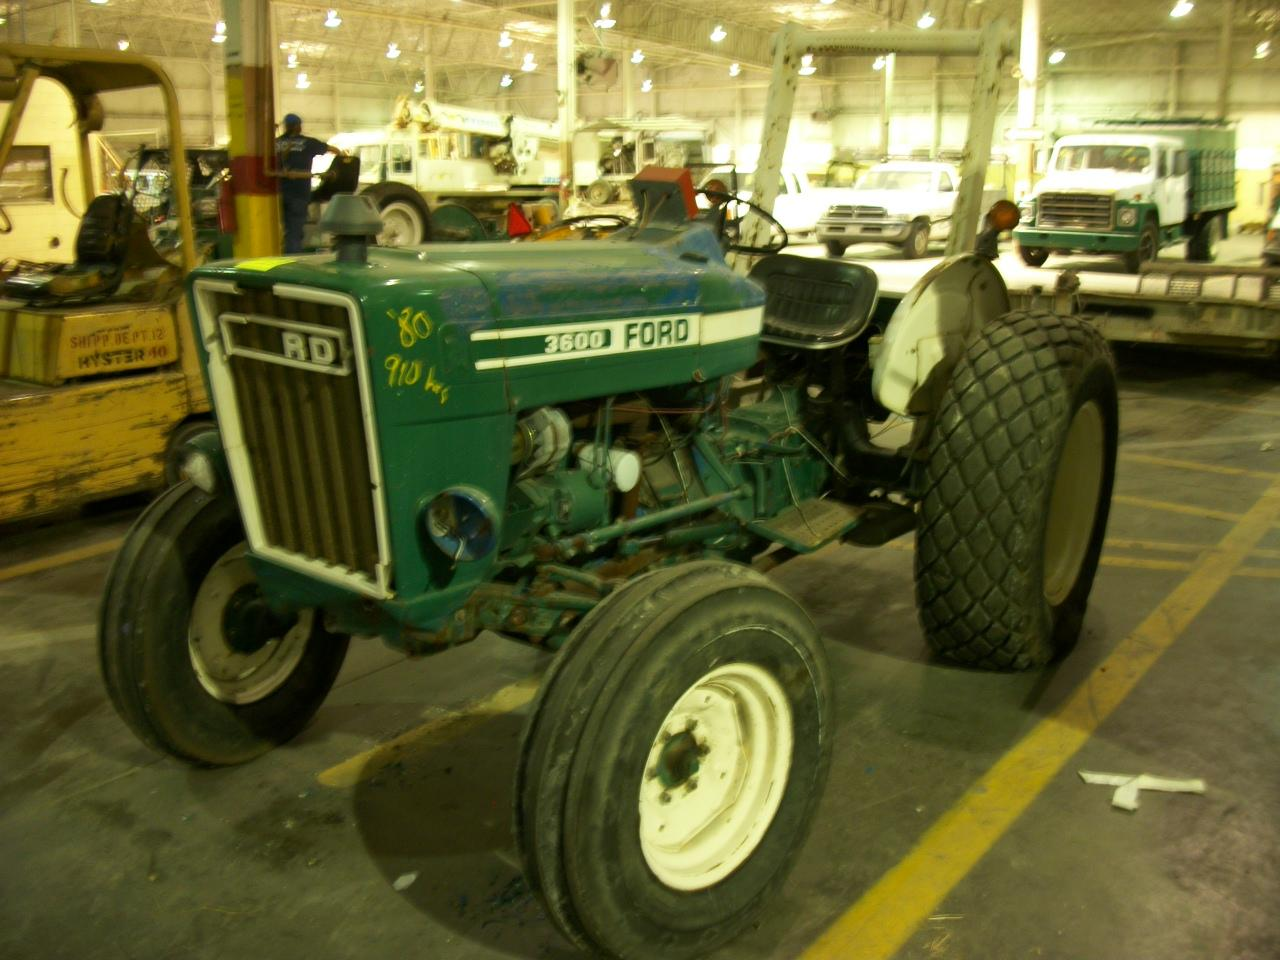 Ford 3600 Tractor : Ford tractor